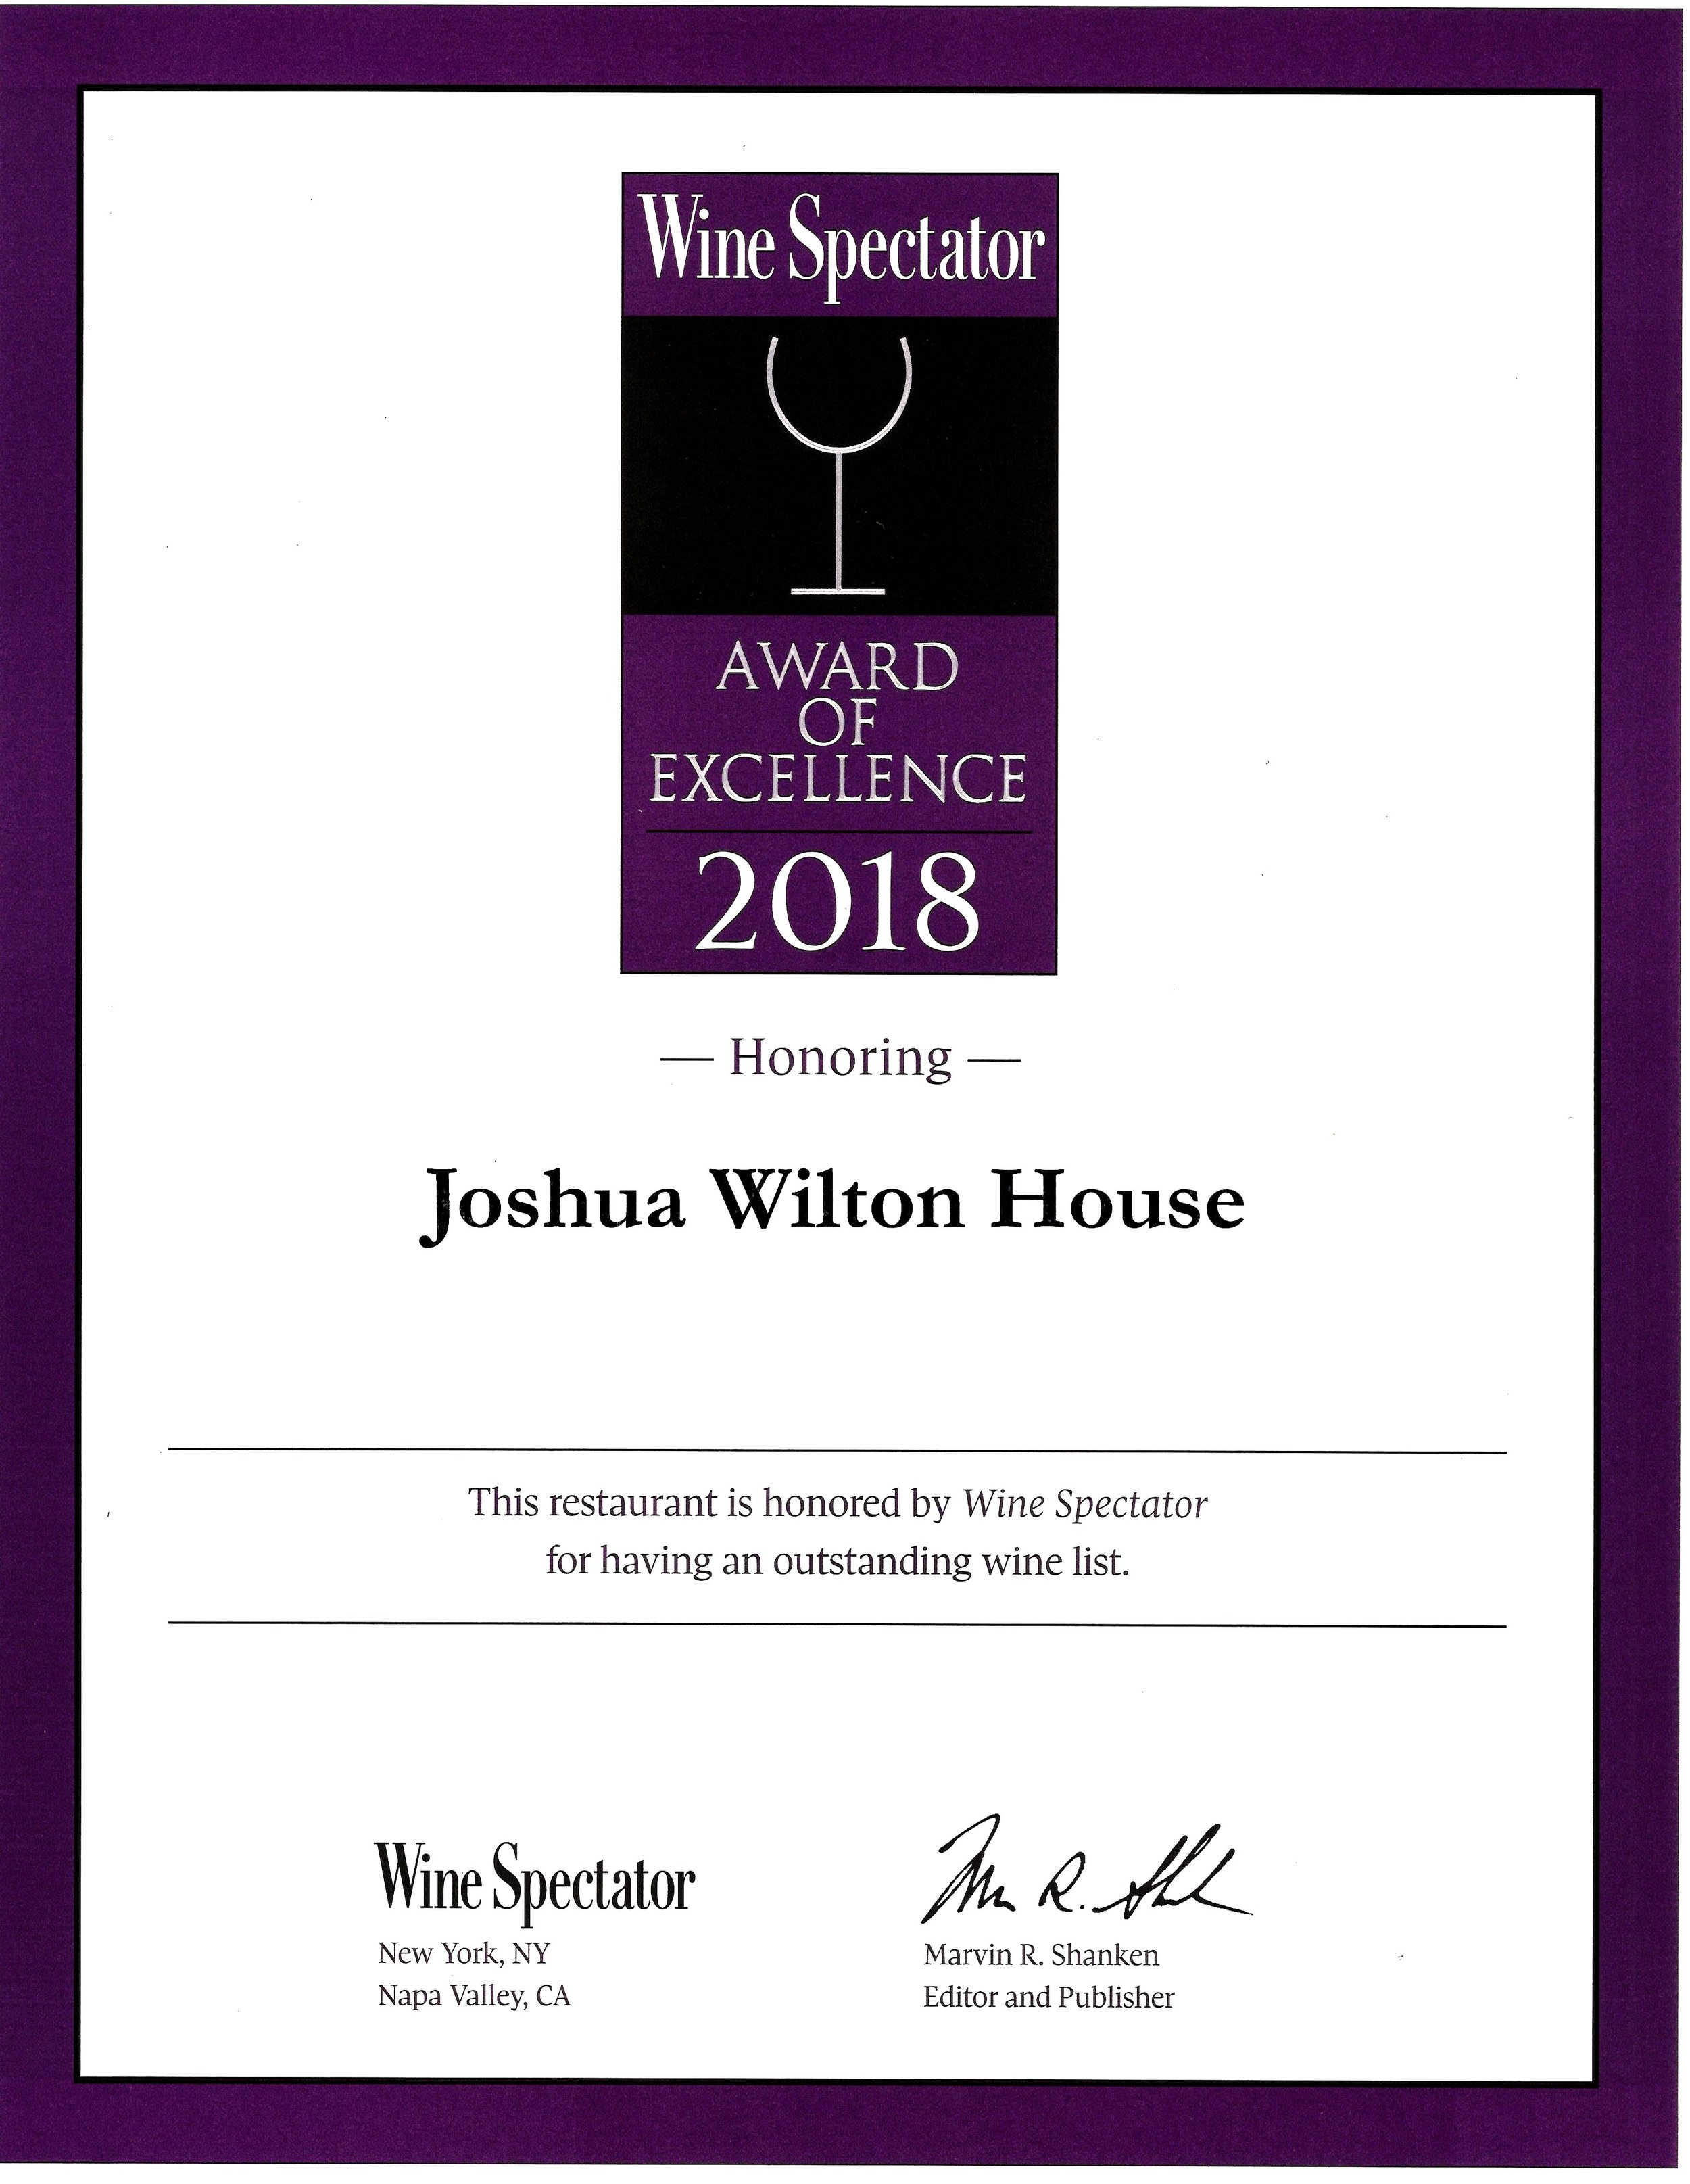 WINE SPECTATOR AWARD - Award of Excellence2,453 winners These wine lists, which typically offer at least 90 selections, feature a well-chosen assortment of quality producers, along with a thematic match to the menu in both price and style. Whether compact or extensive, focused or diverse, these lists deliver sufficient choice to satisfy discerning wine lovers